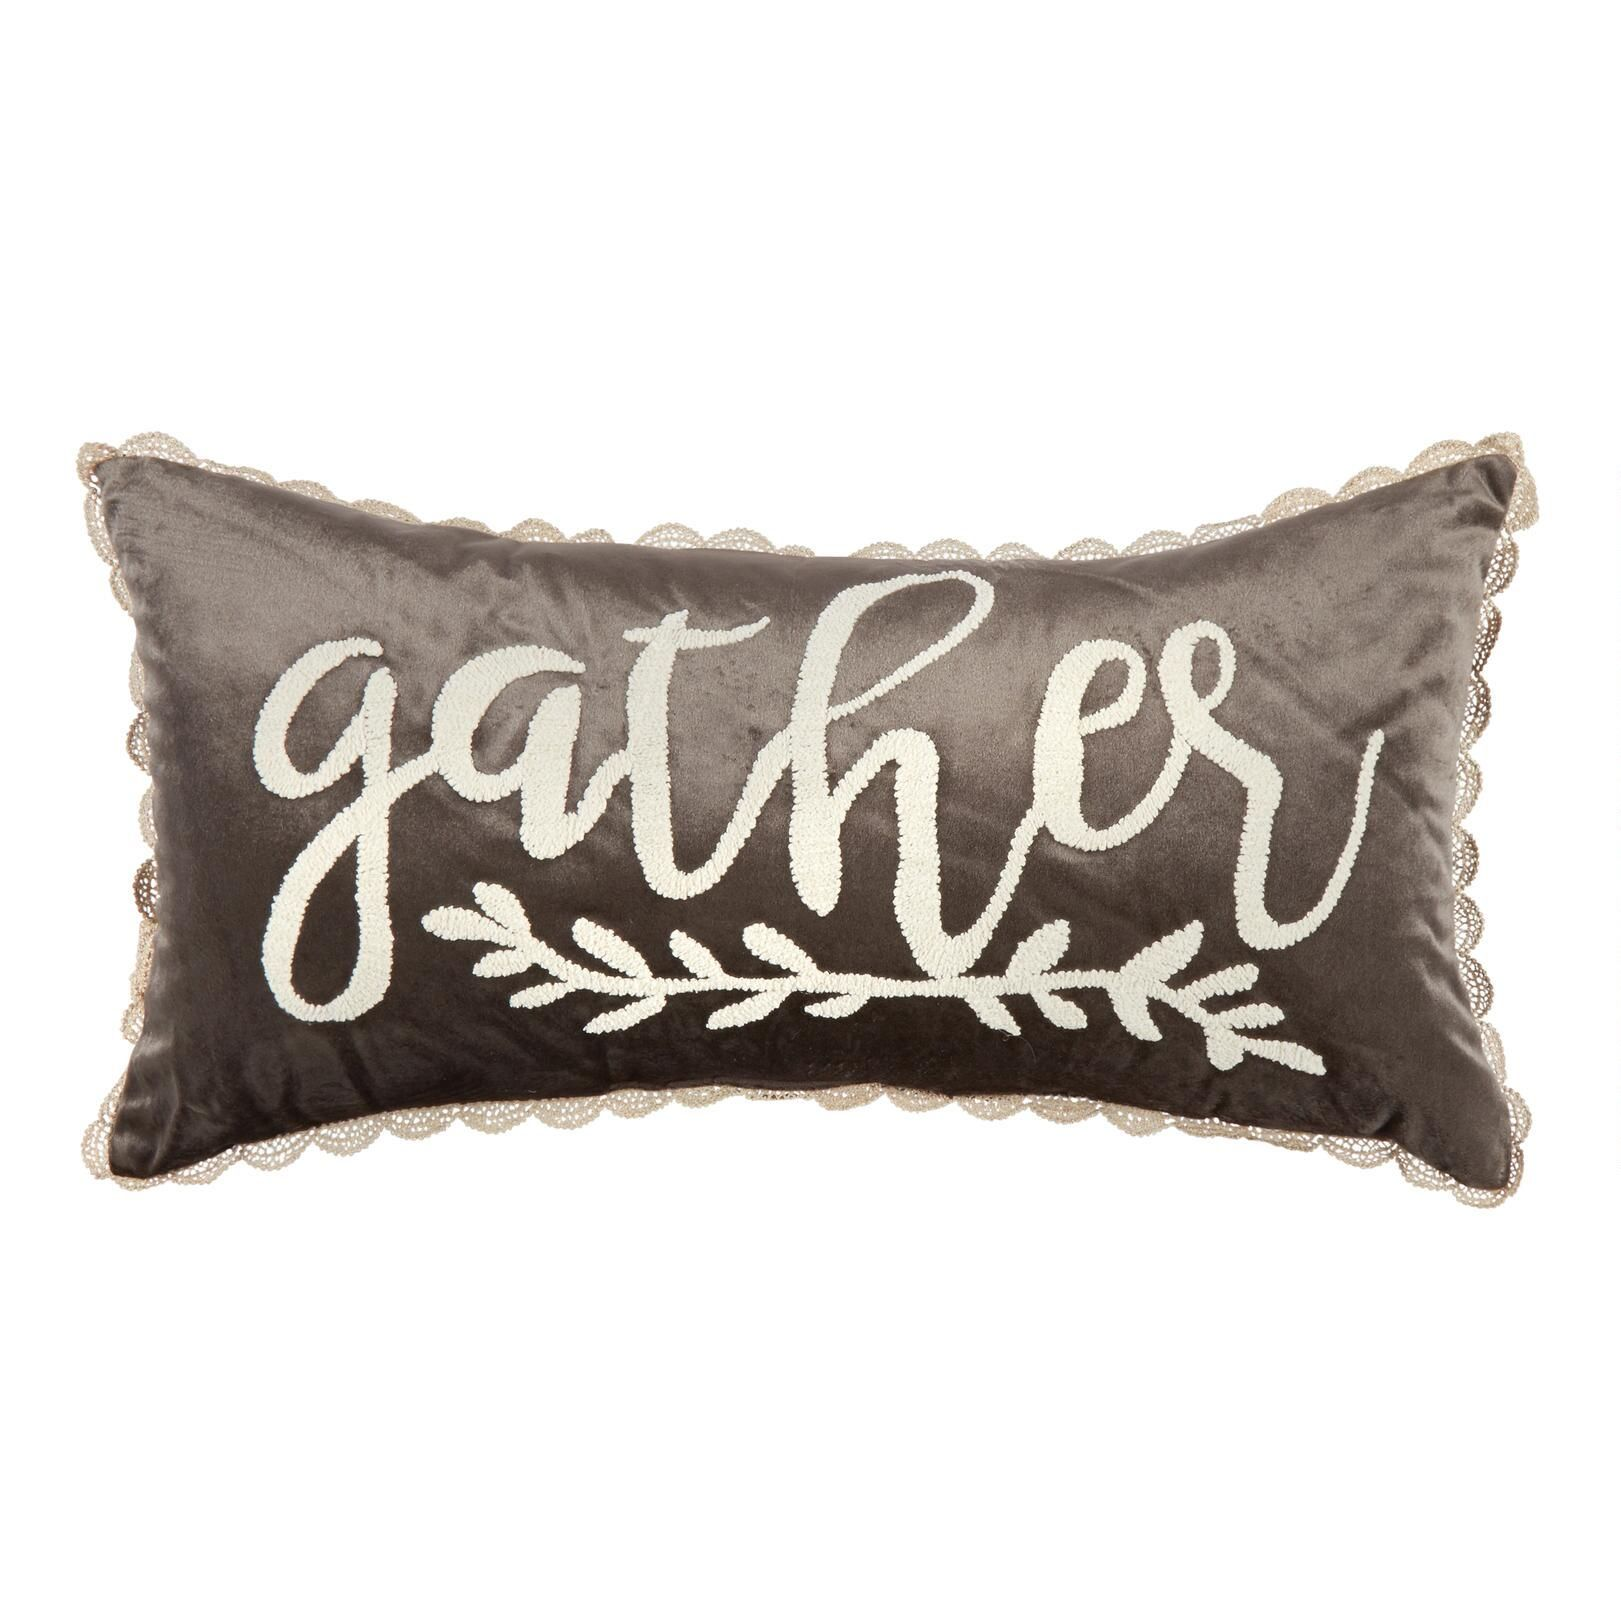 One Of My Favorite Discoveries At Christmastreeshops Com Oblong Throw Pillow Throw Pillows Christmas Throw Pillows